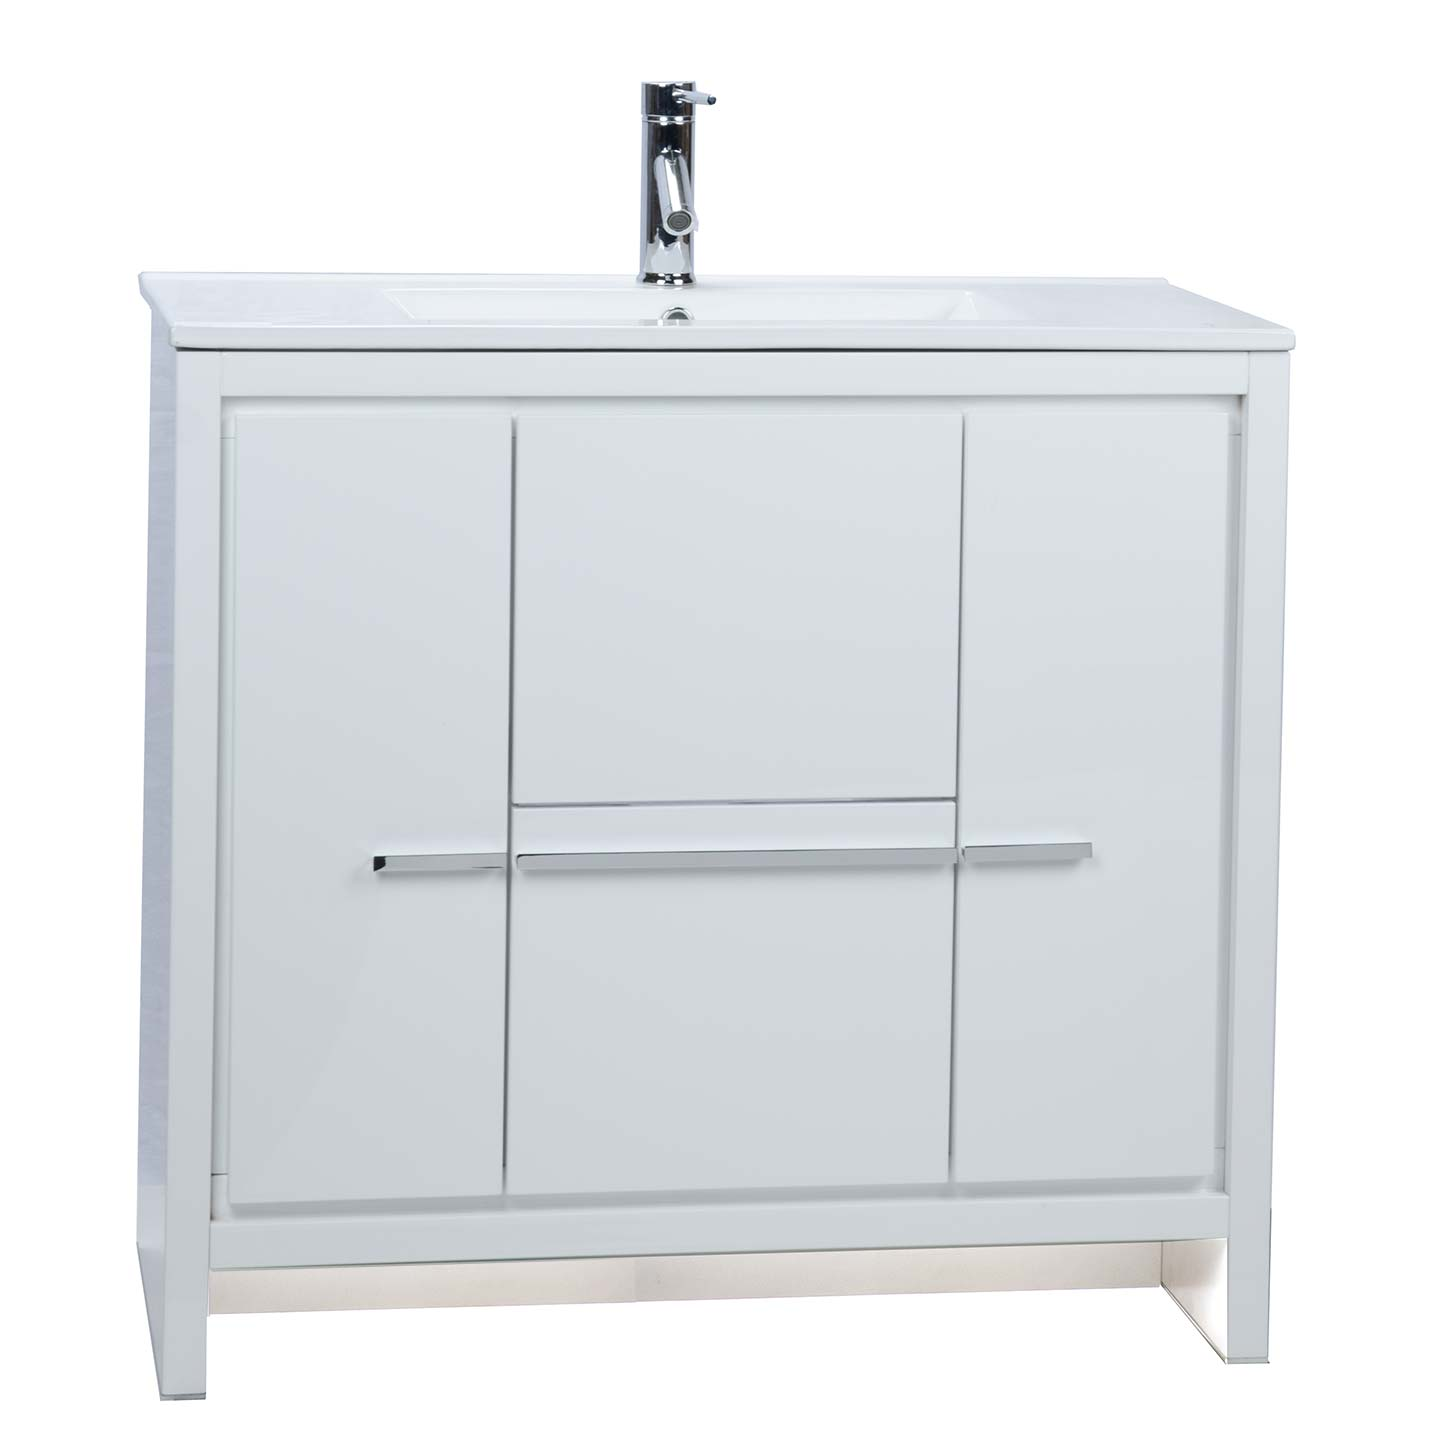 CBI Enna 36 Inch Modern Bathroom Vanity High Gloss White TN LA900 HGW